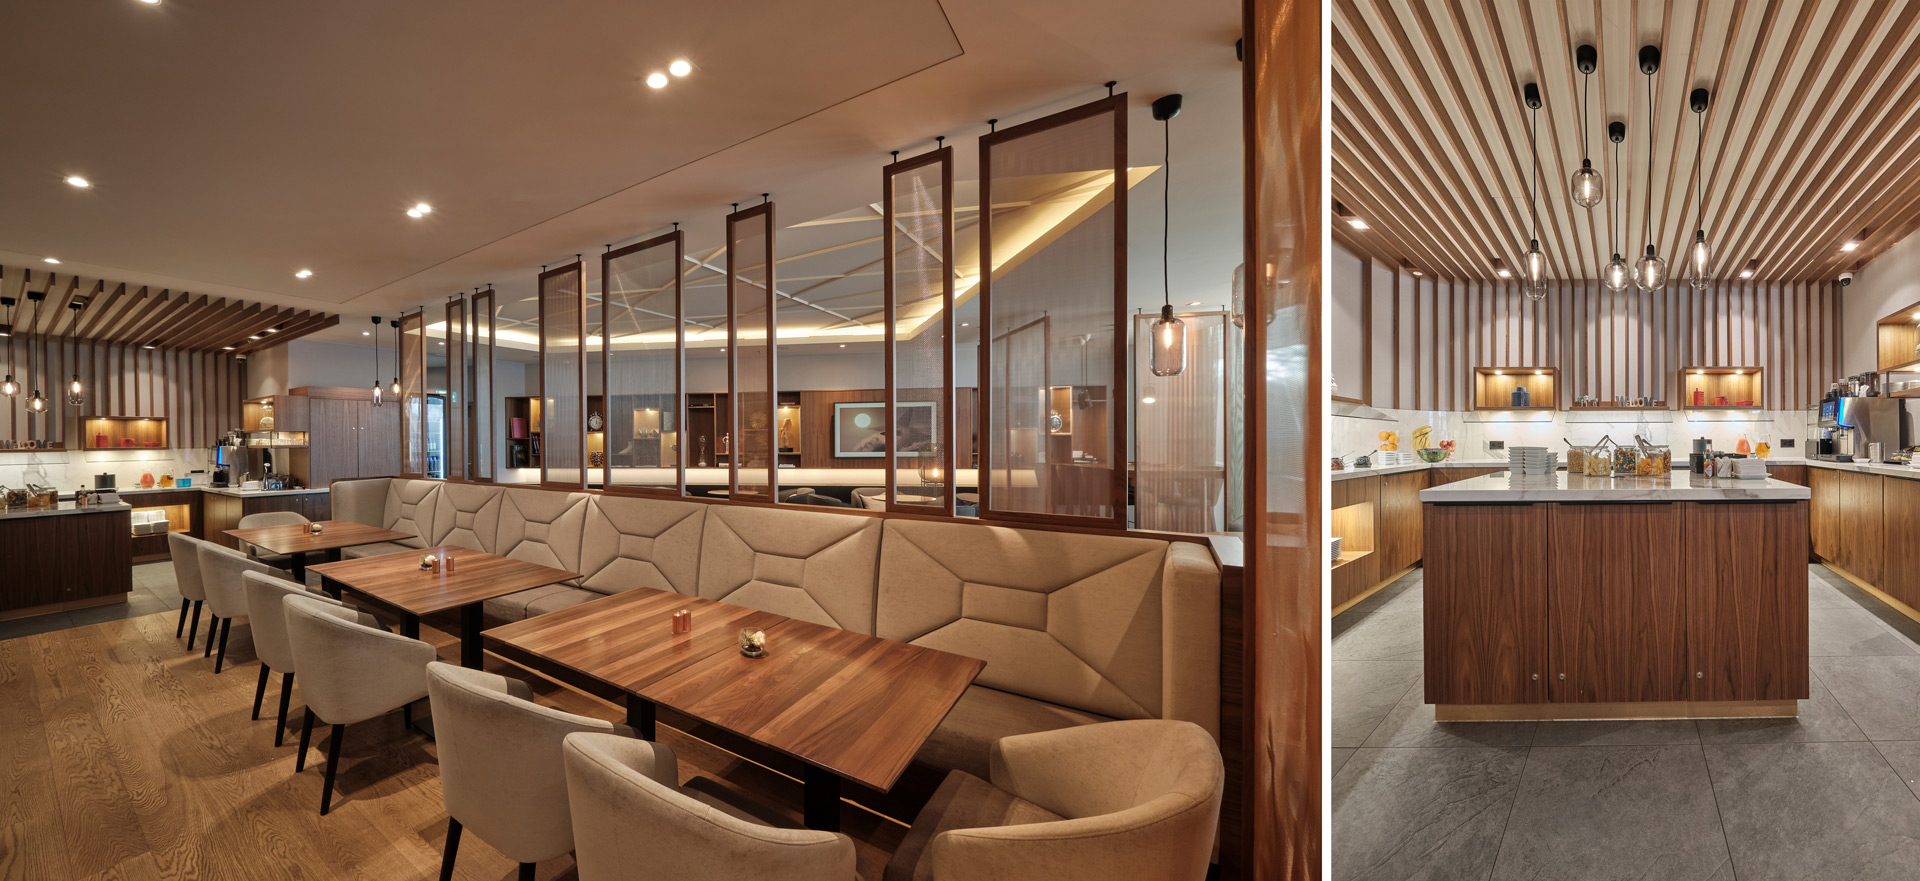 Dining in der M Lounge by JOI-Design